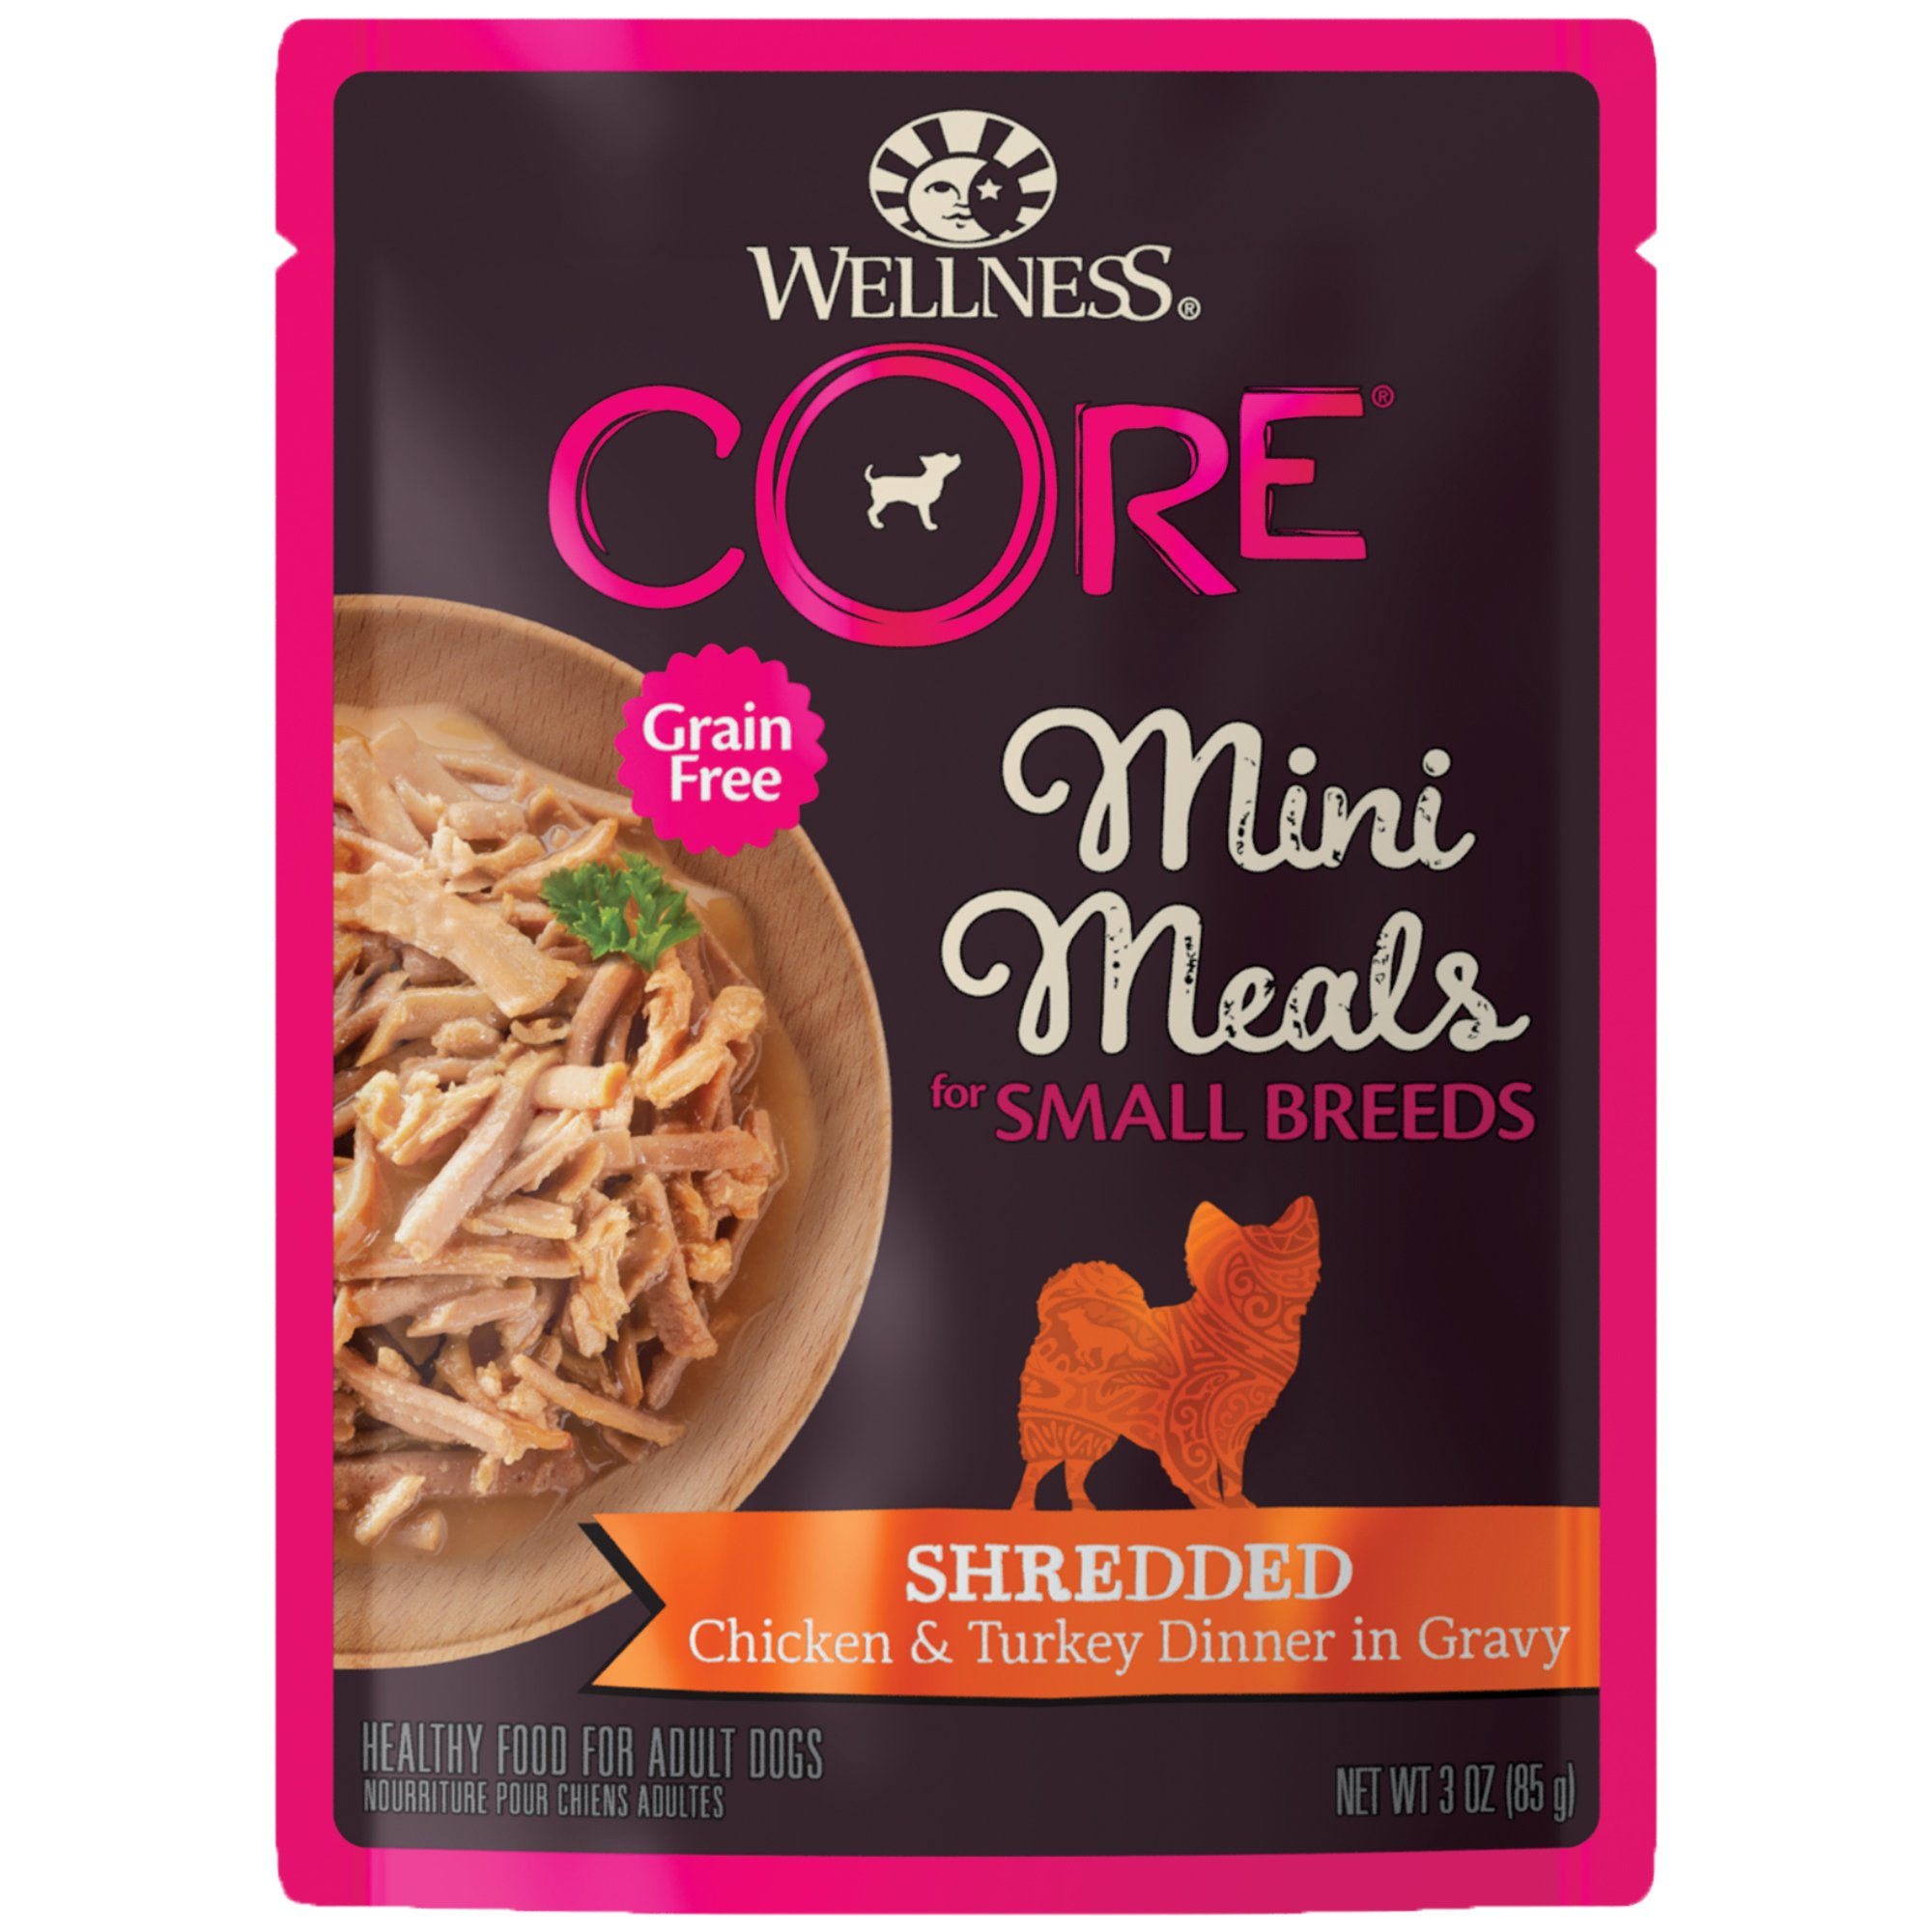 Wellness Core Natural Grain Free Small Breed Mini Meals Wet Dog Food, Shredded Chicken & Turkey Dinner In Gravy, 3-Ounce Pouch (Pack Of 12) by Wellness Natural Pet Food